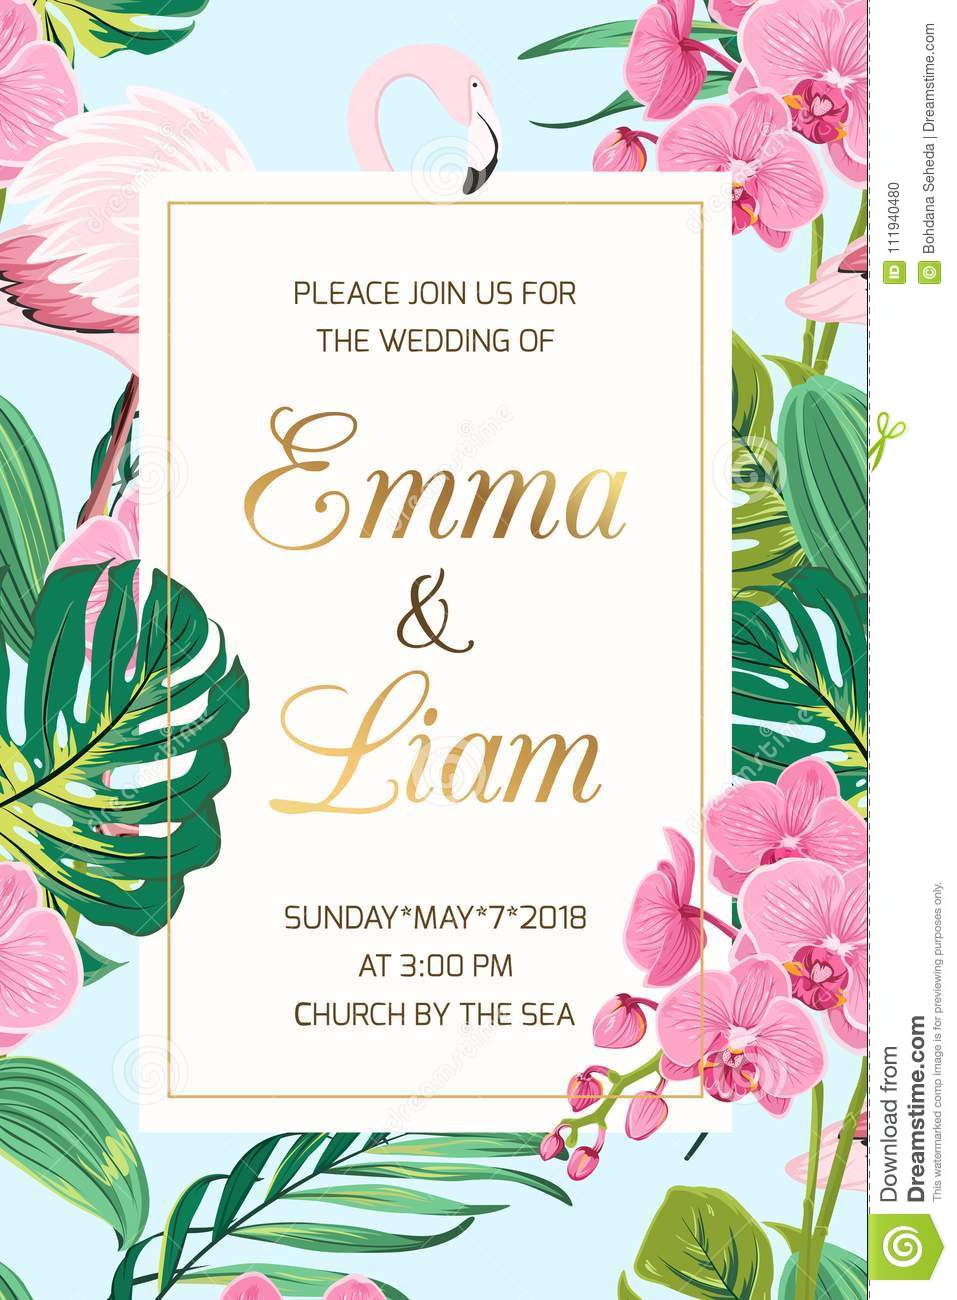 Wedding Invitation Tropical Leaves Orchid Flamingo Stock Vector ...